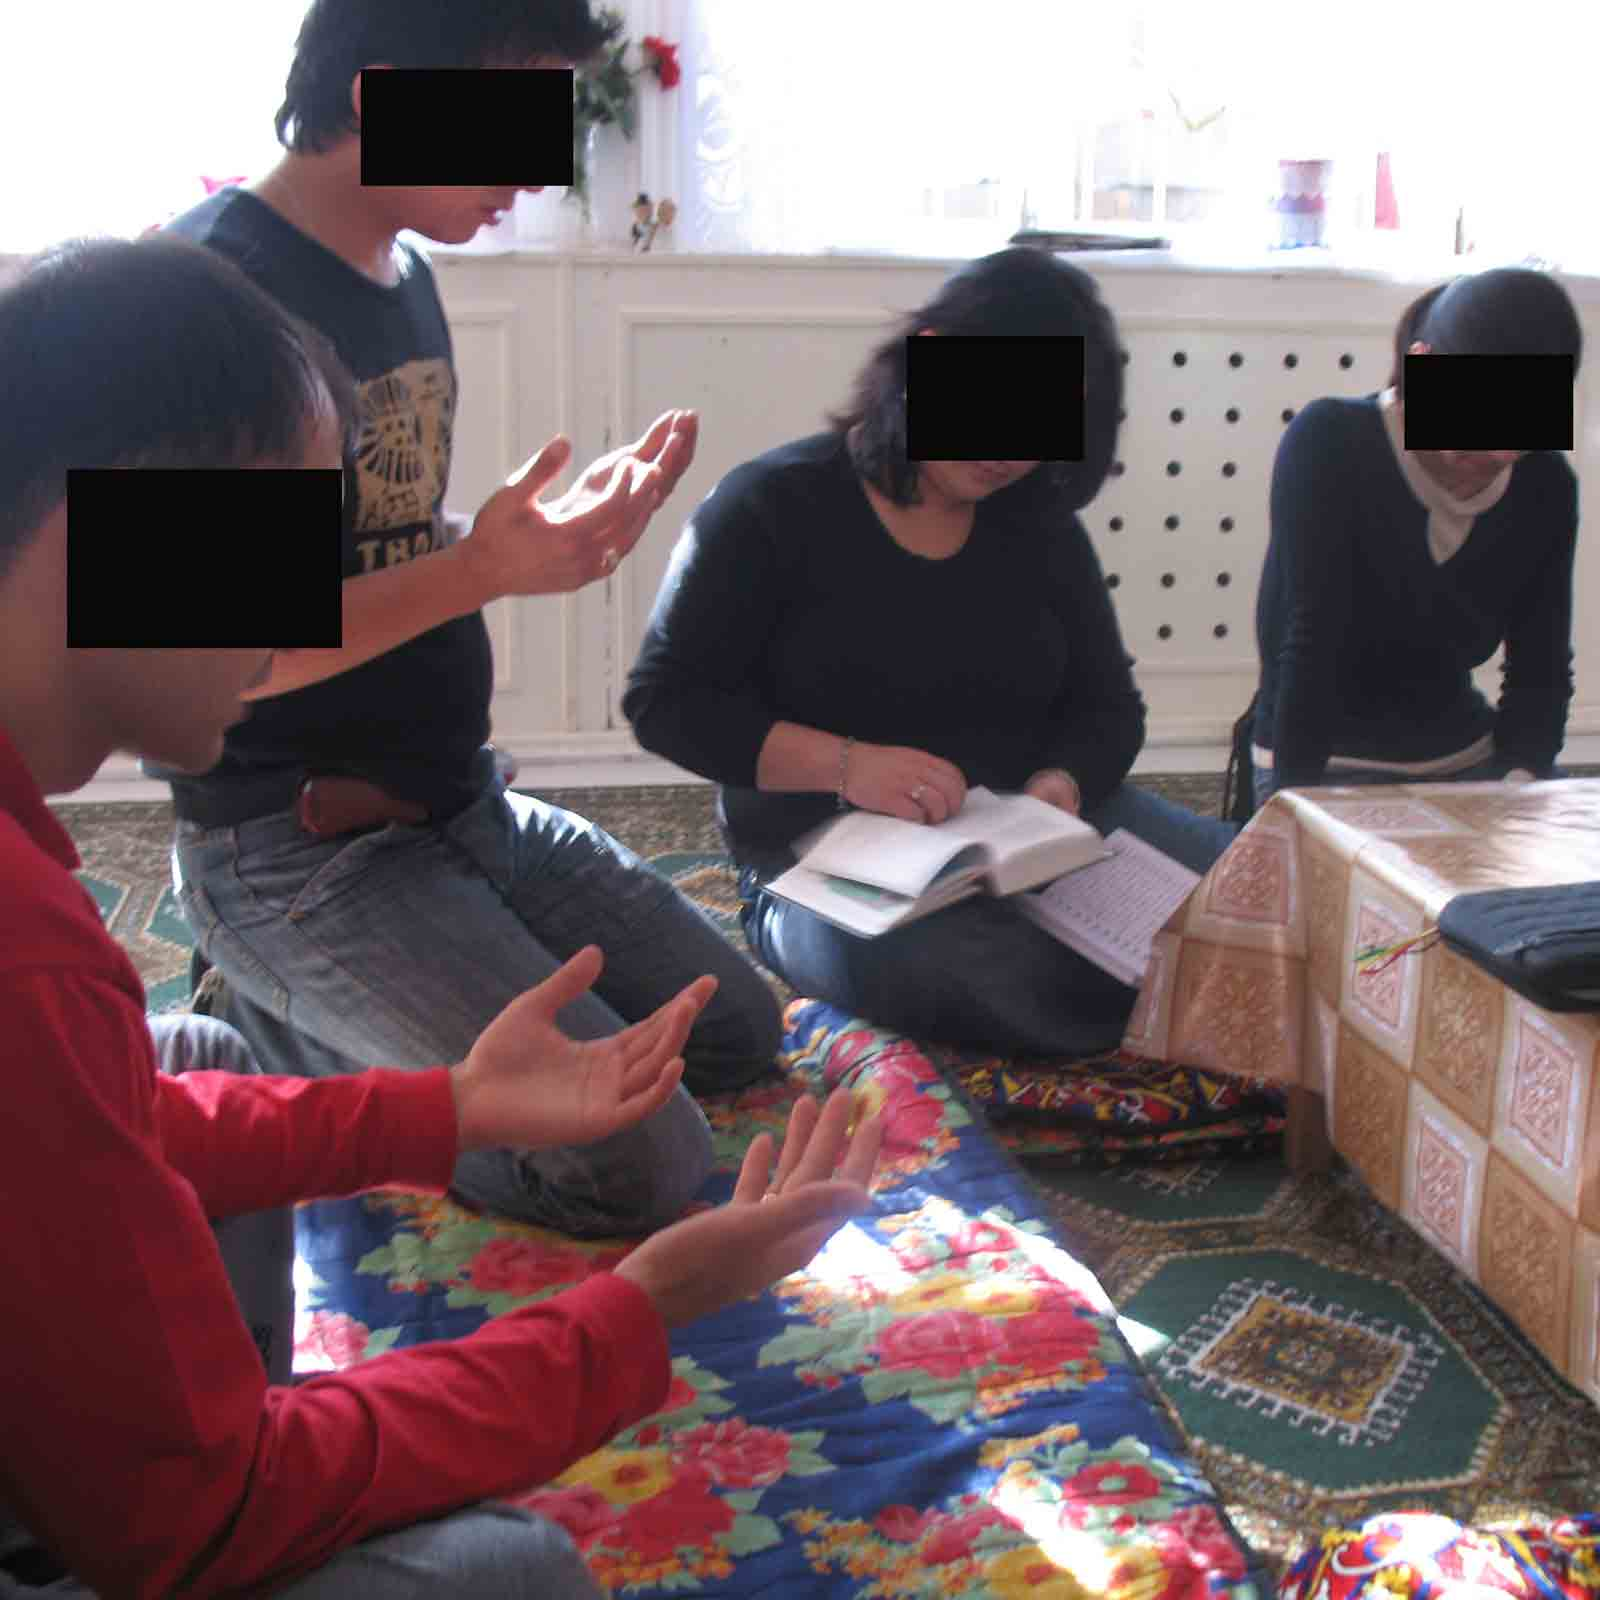 Uzbek Christians are at risk for even having a Bible in their home.